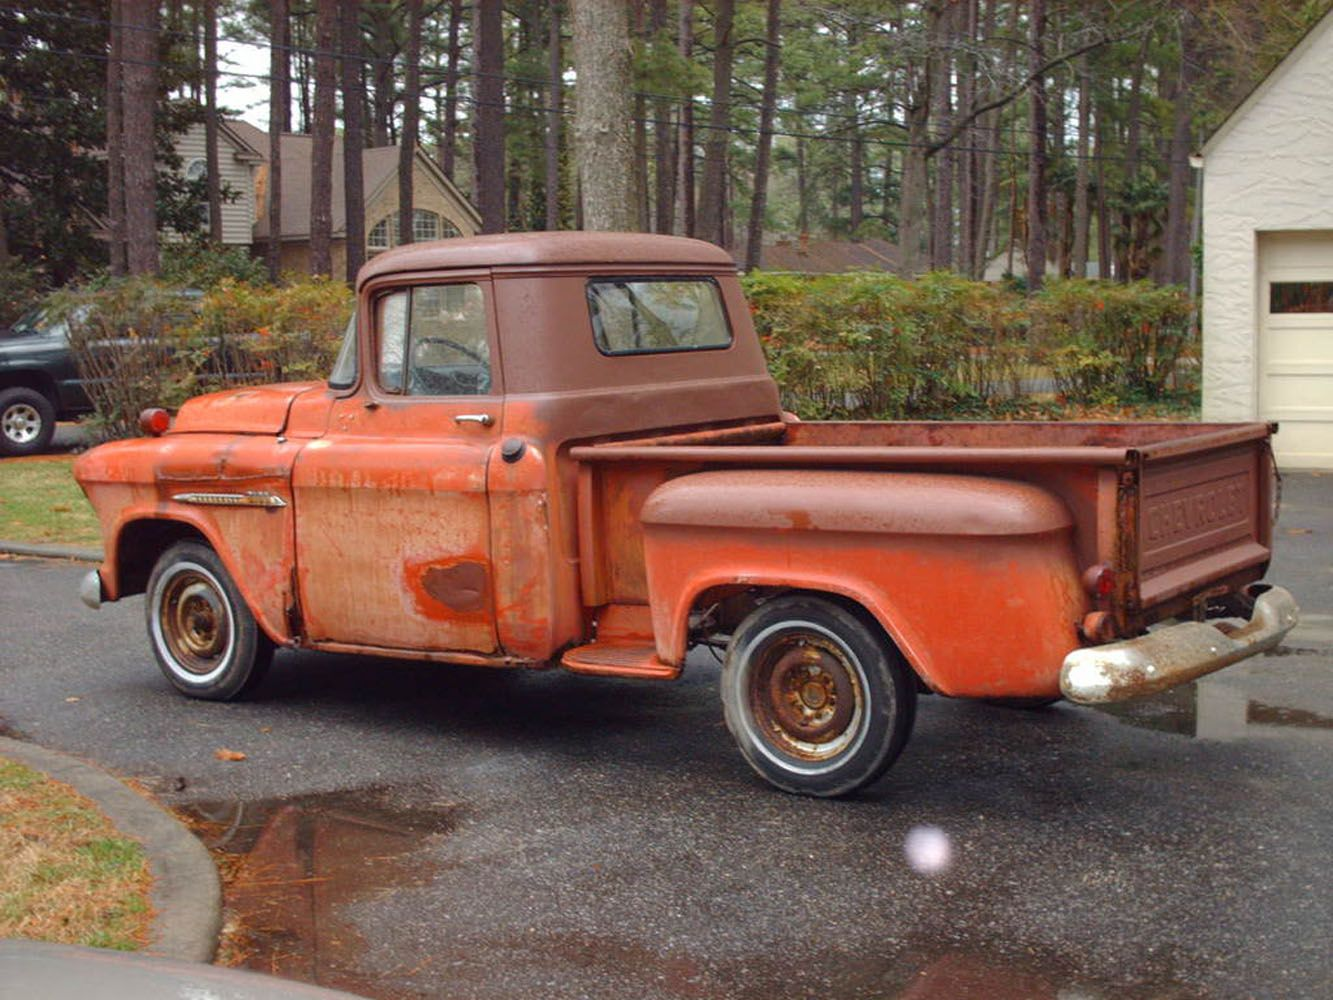 1955 Second Series Chevy Gmc Pickup Truck Pickup Trucks Gmc